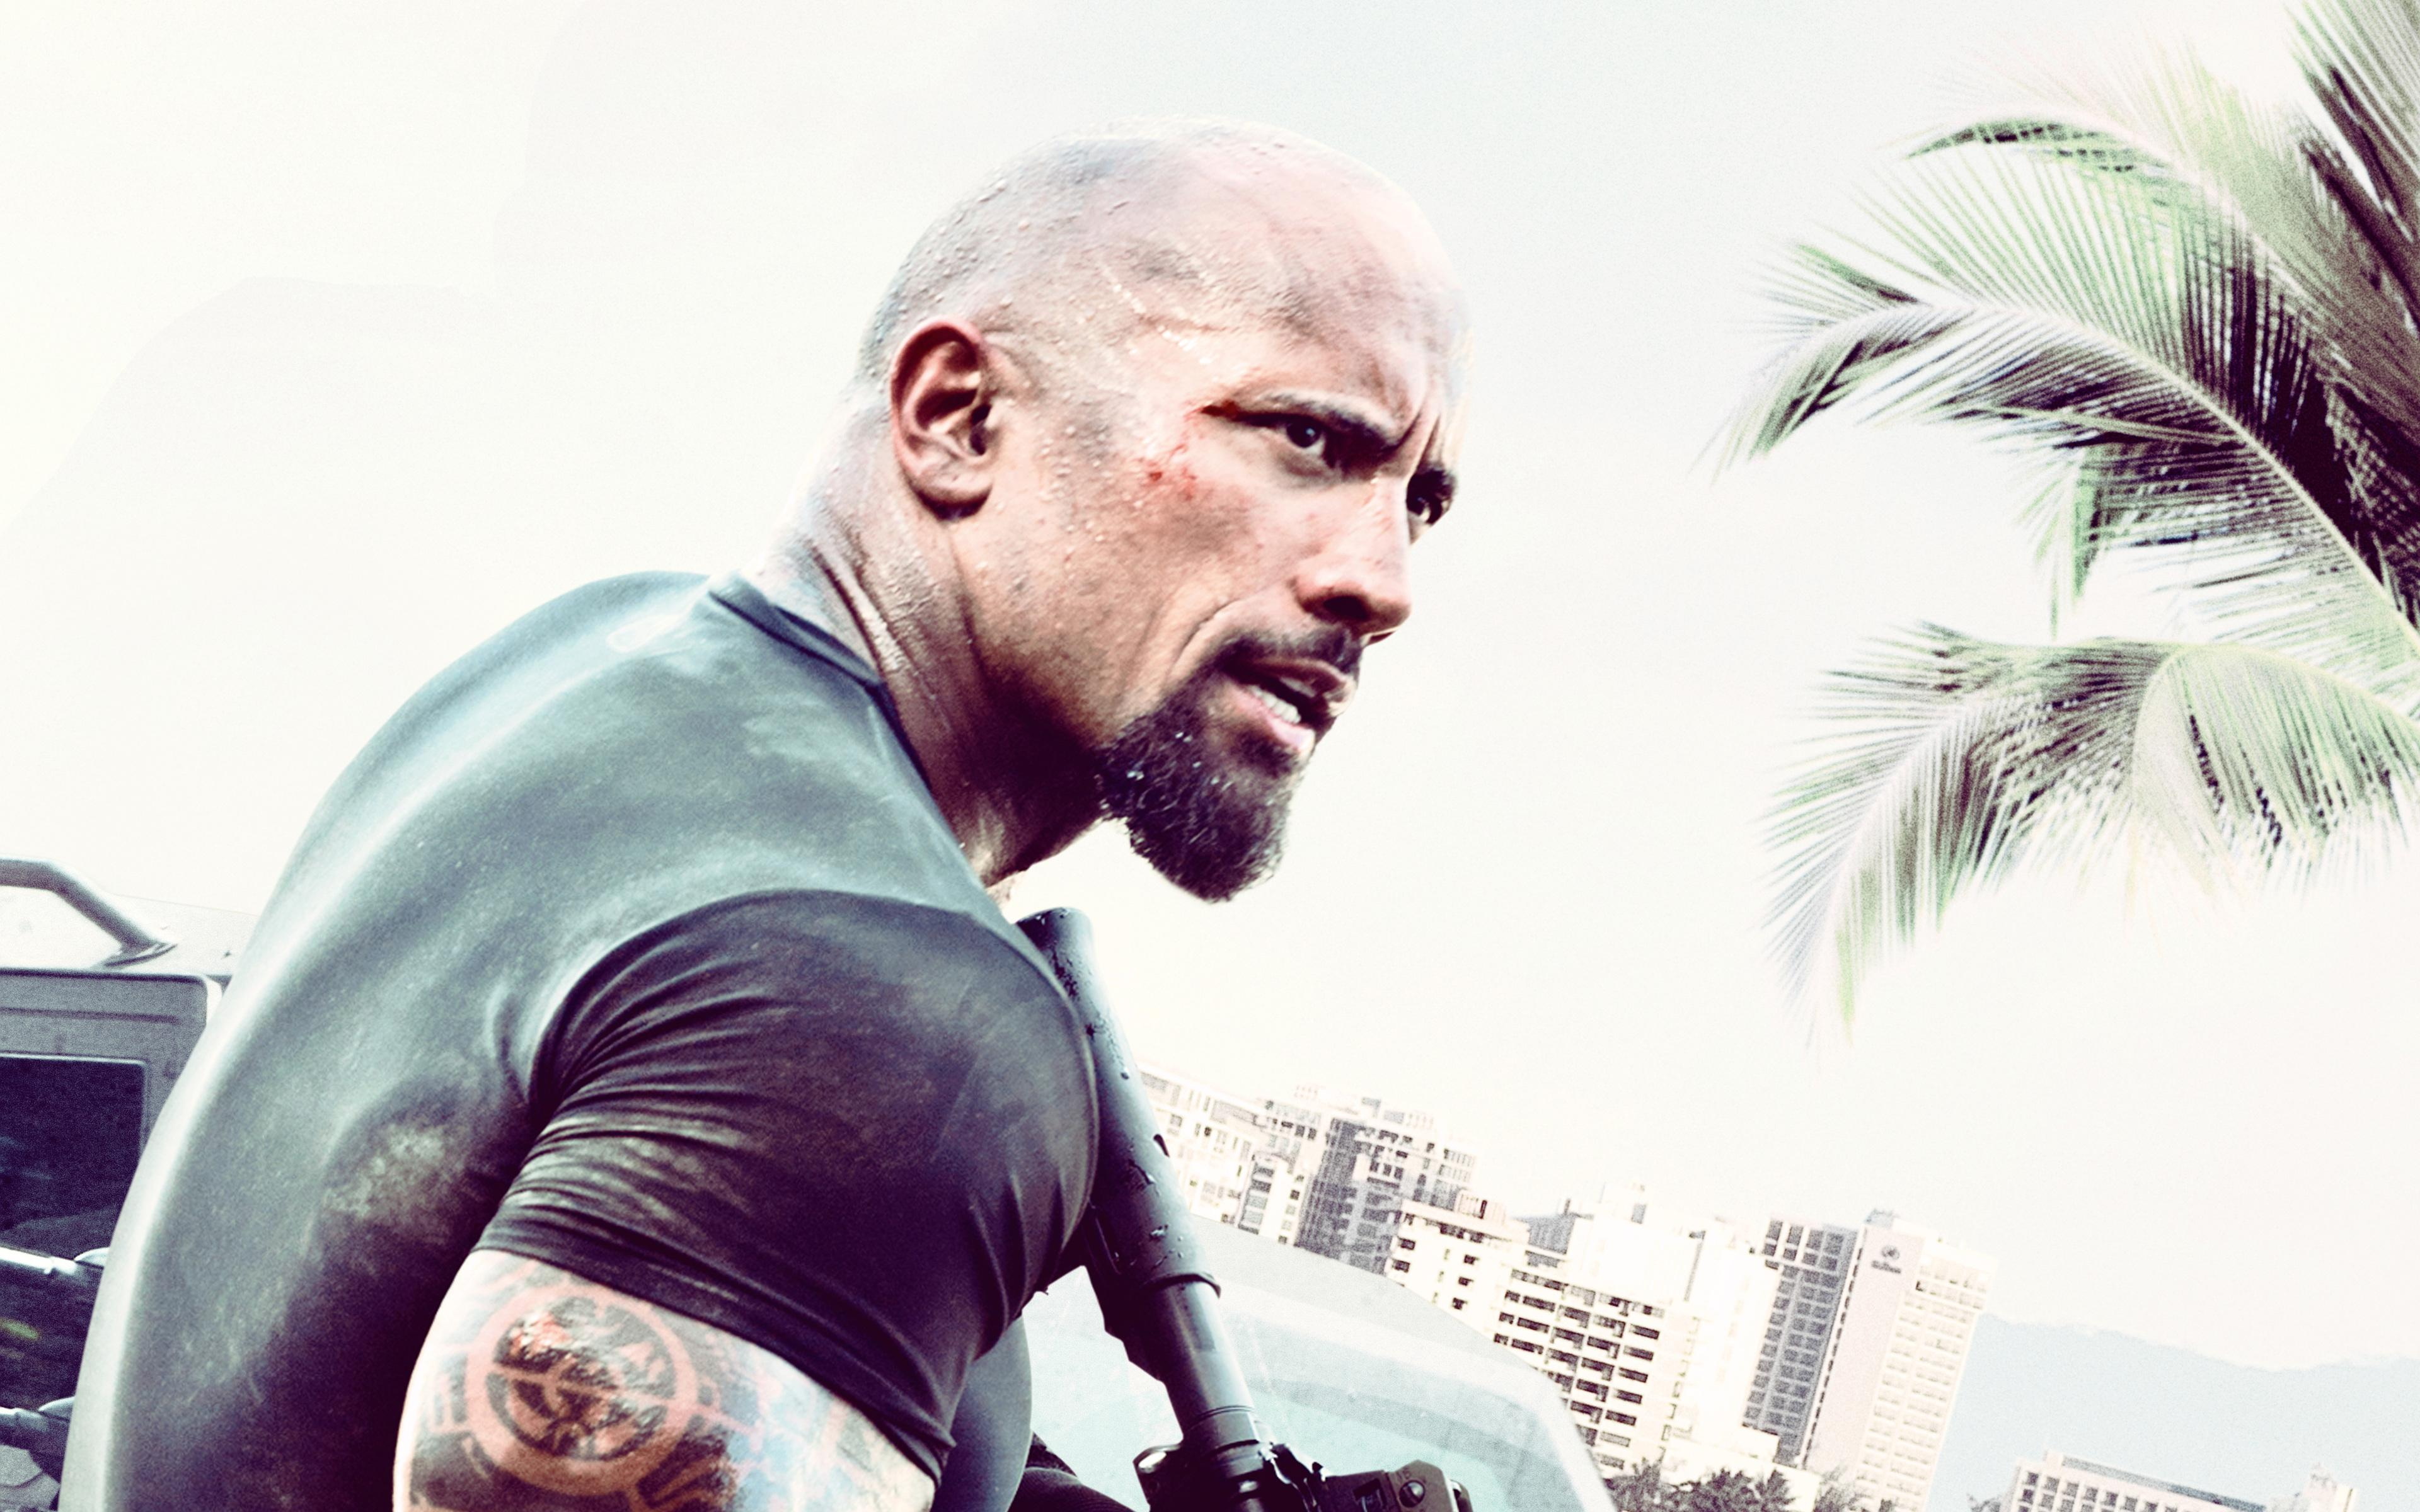 Download wallpapers Rock, 4k, Dwayne Johnson, The Fast and the